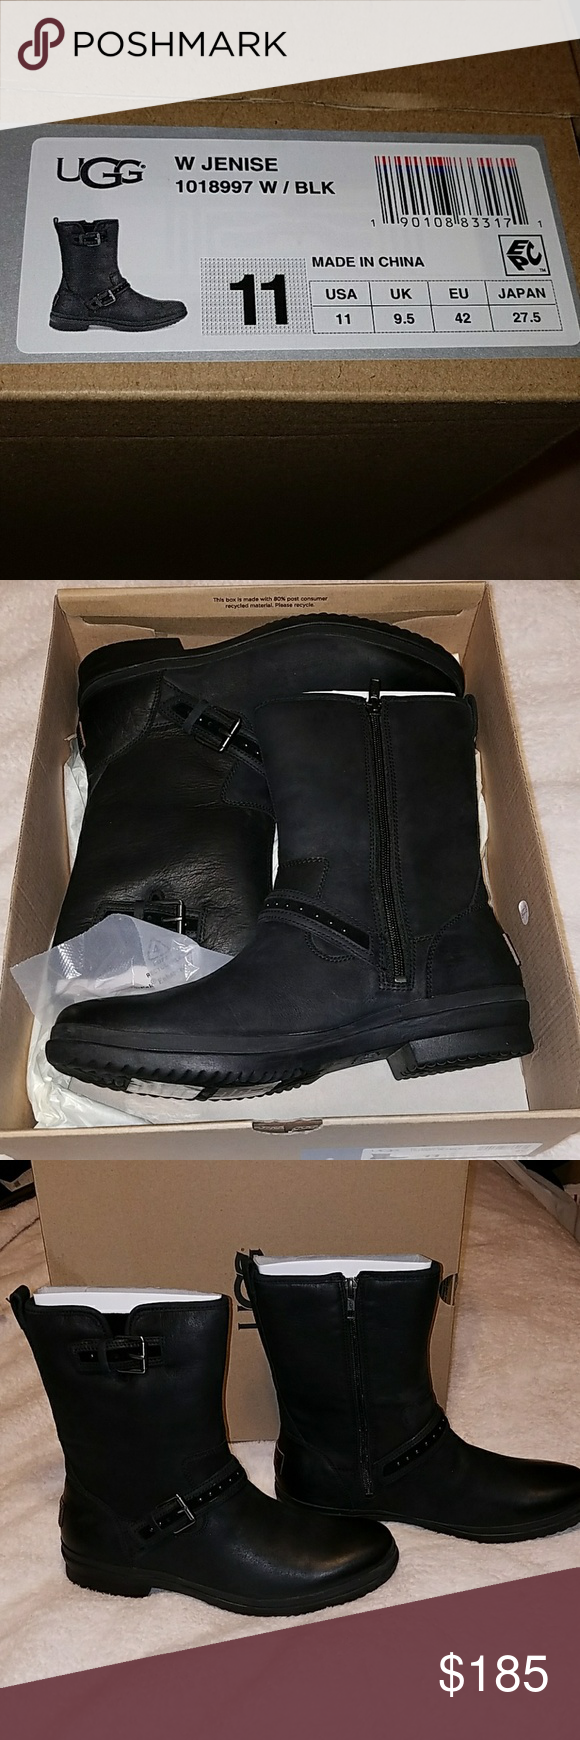 fe493403d40 NEW 🌻 UGGS waterproof Jenise boots NEW UGGS waterproof Jenise boots ...